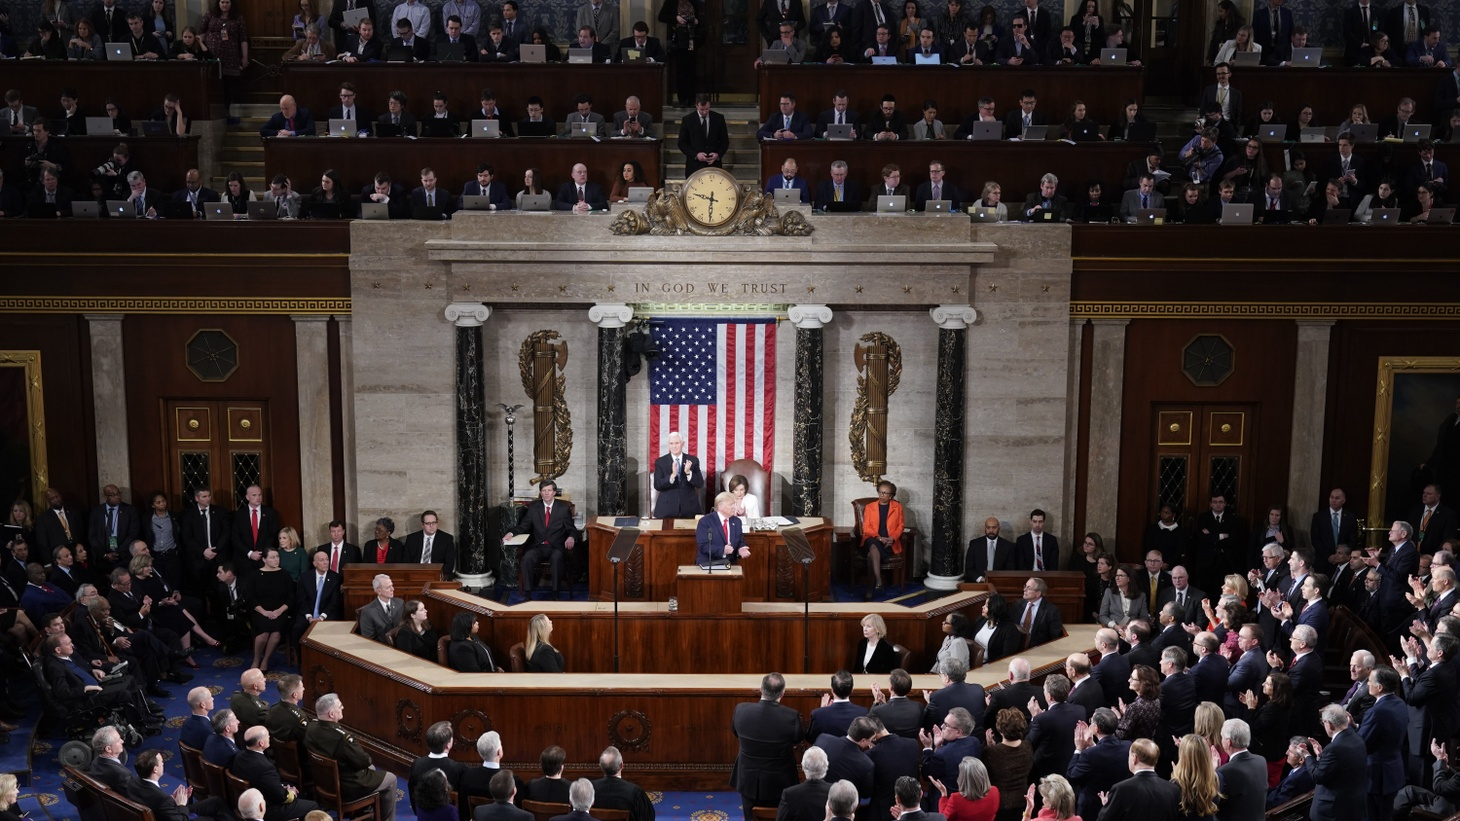 U.S. President Donald Trump delivers the State of the Union address to a joint session of the U.S. Congress in the House Chamber of the U.S. Capitol in Washington, U.S., February 4, 2020.